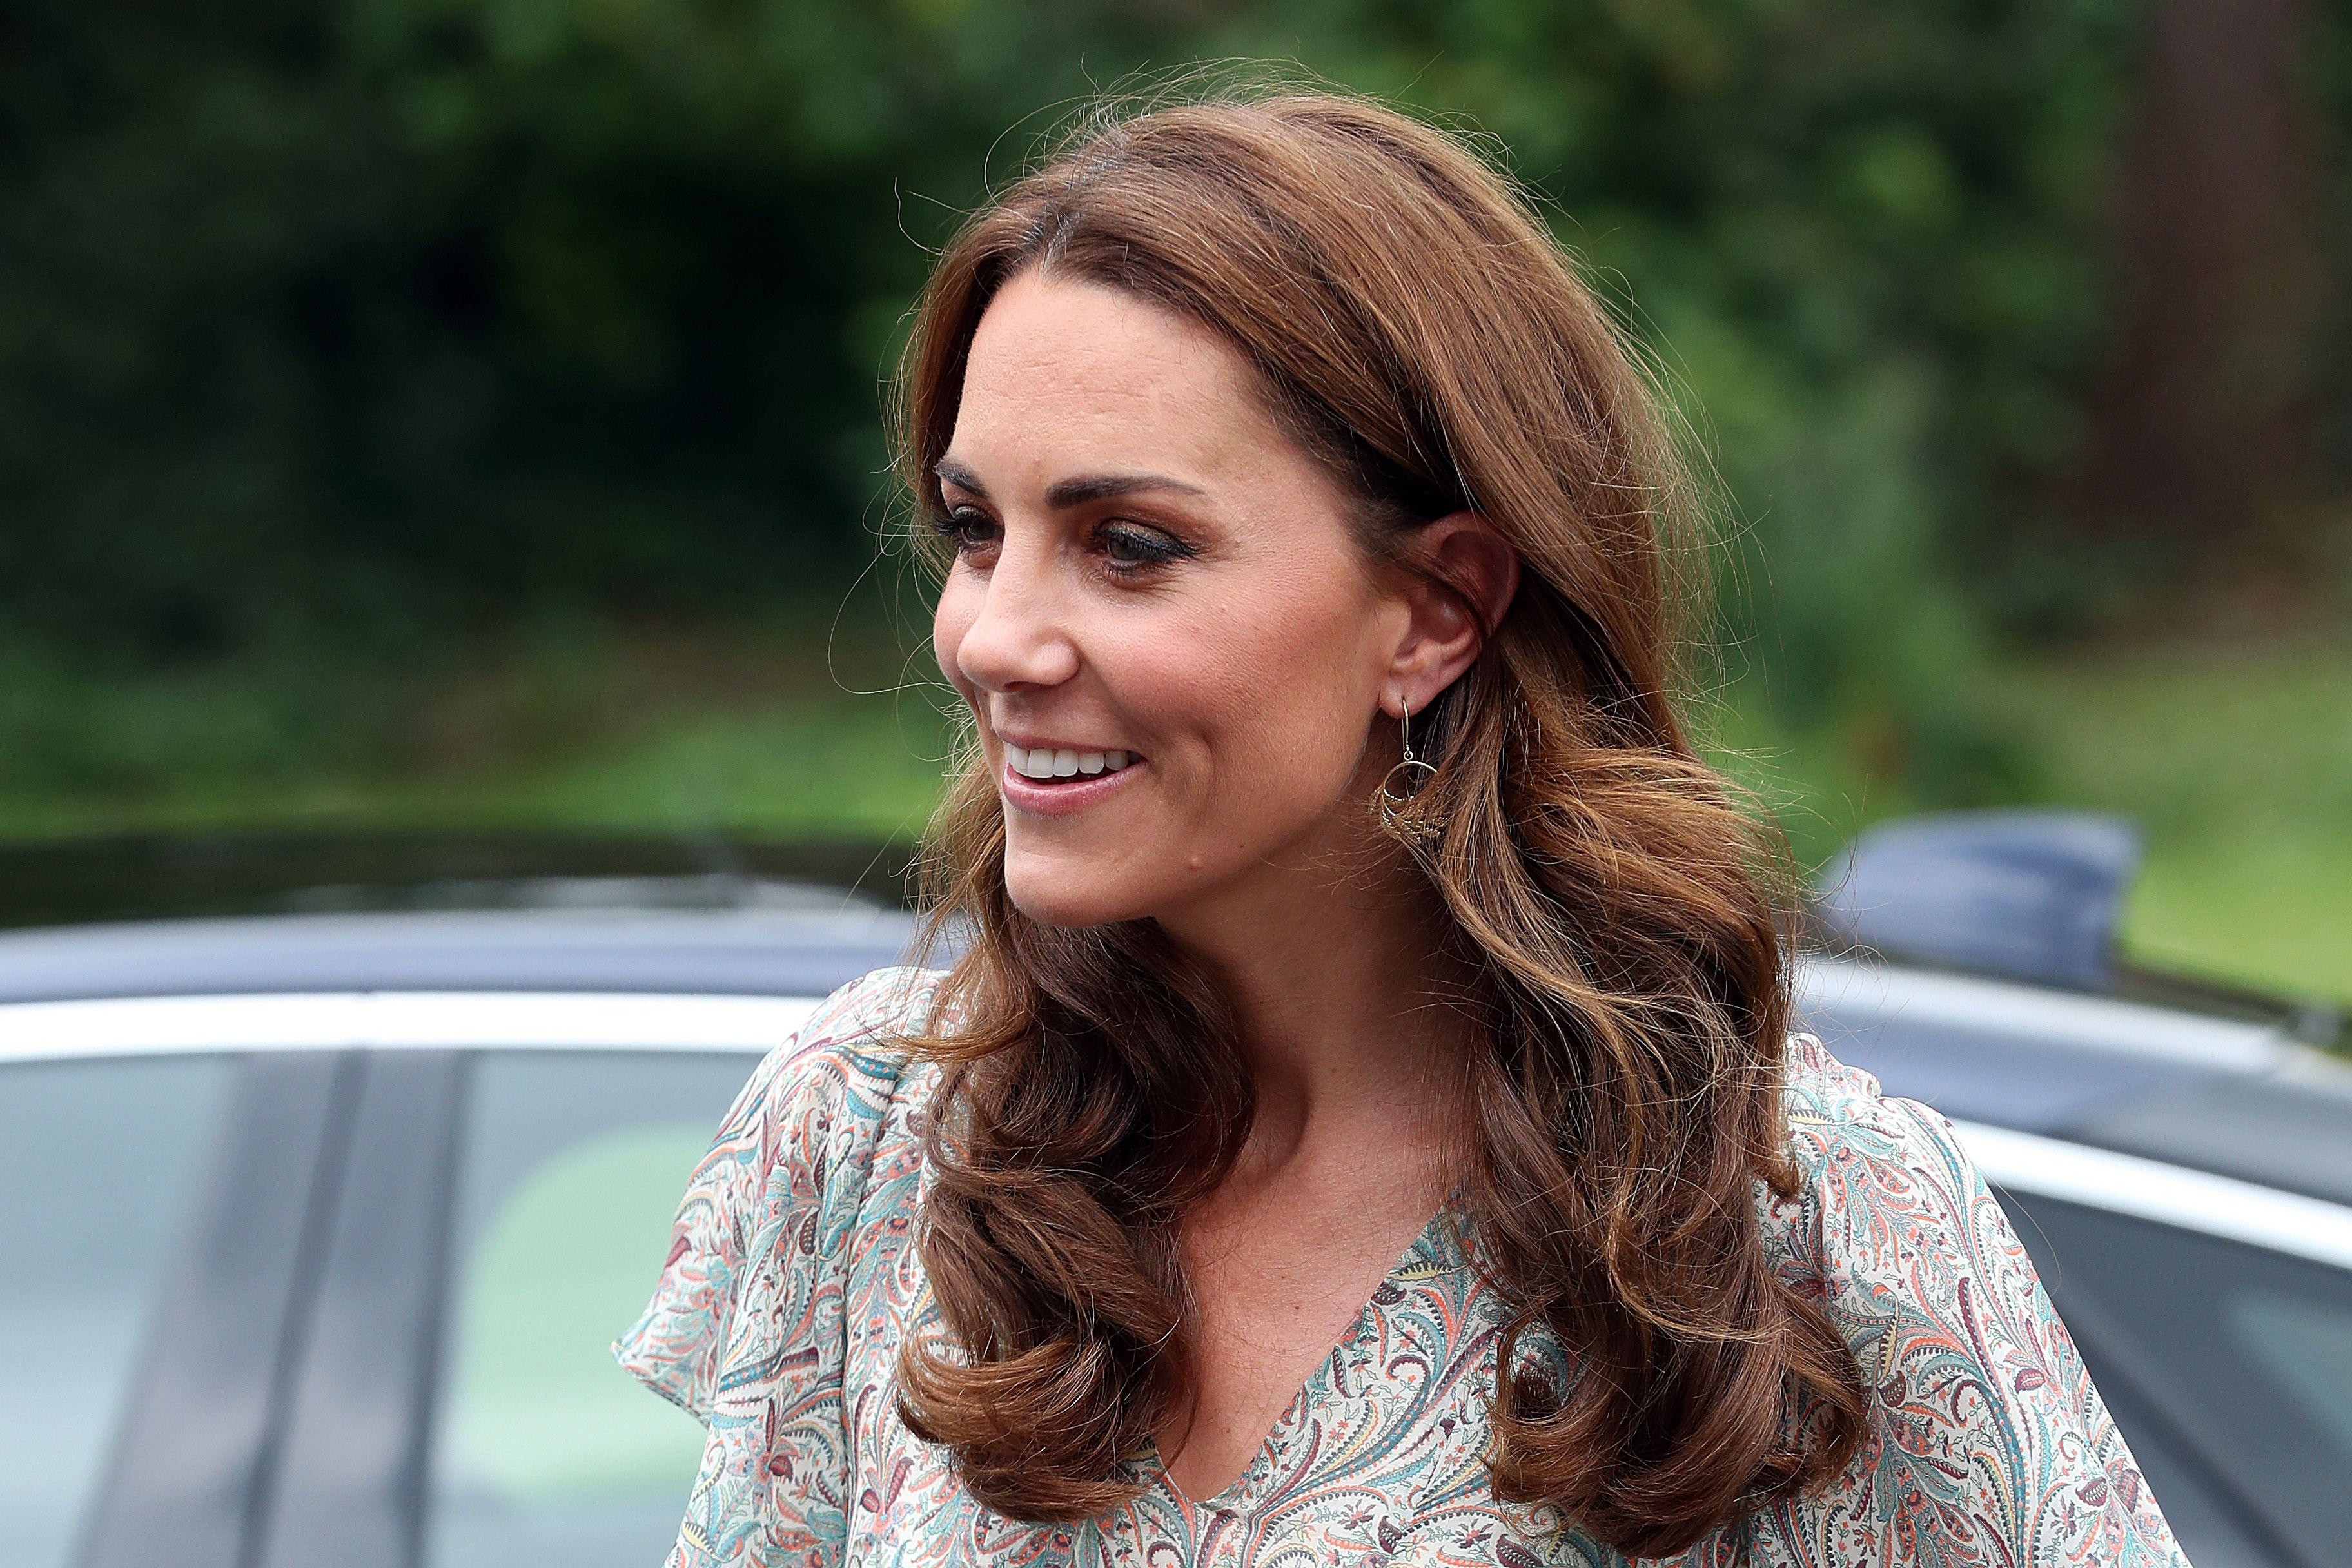 Kate Middleton Wore the Prettiest Summer Dress and Espadrilles to a Photography Workshop